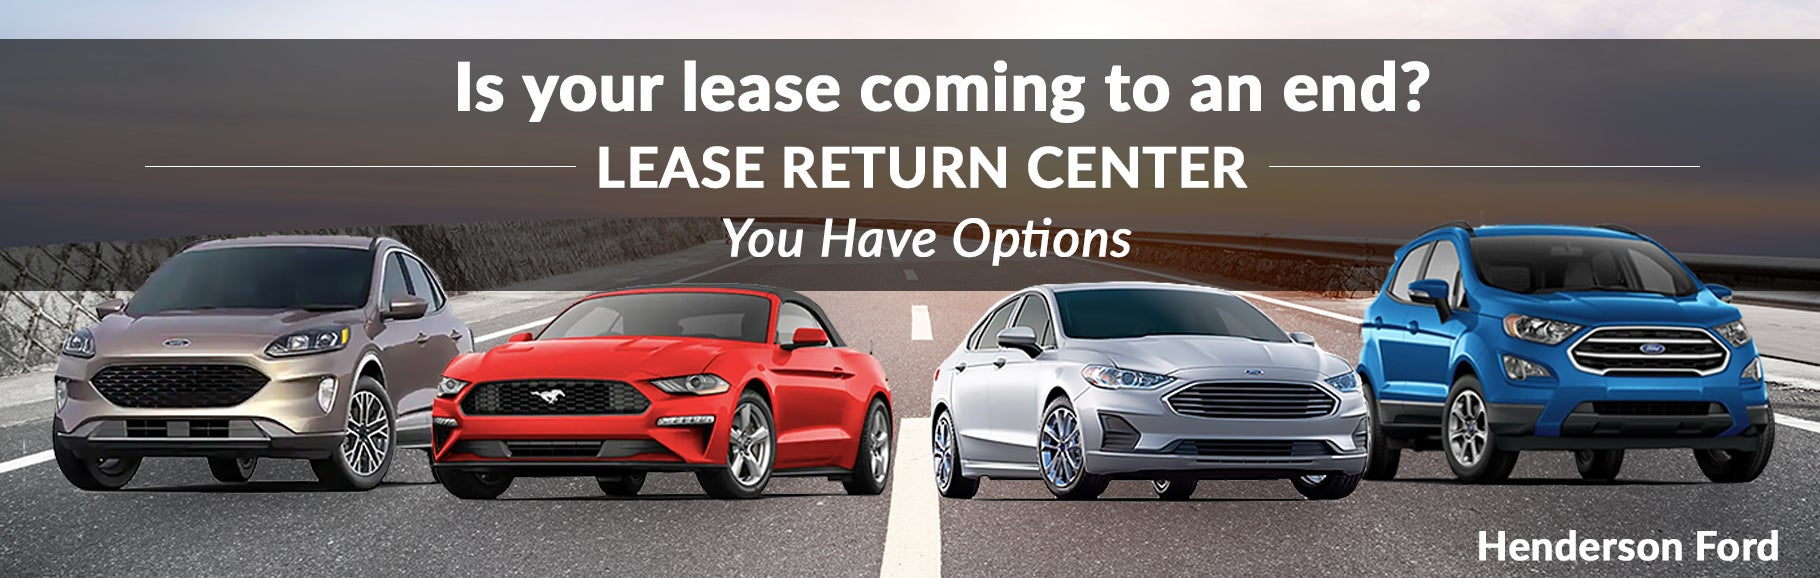 Ending A Car Lease Early >> Ford Lease End Options